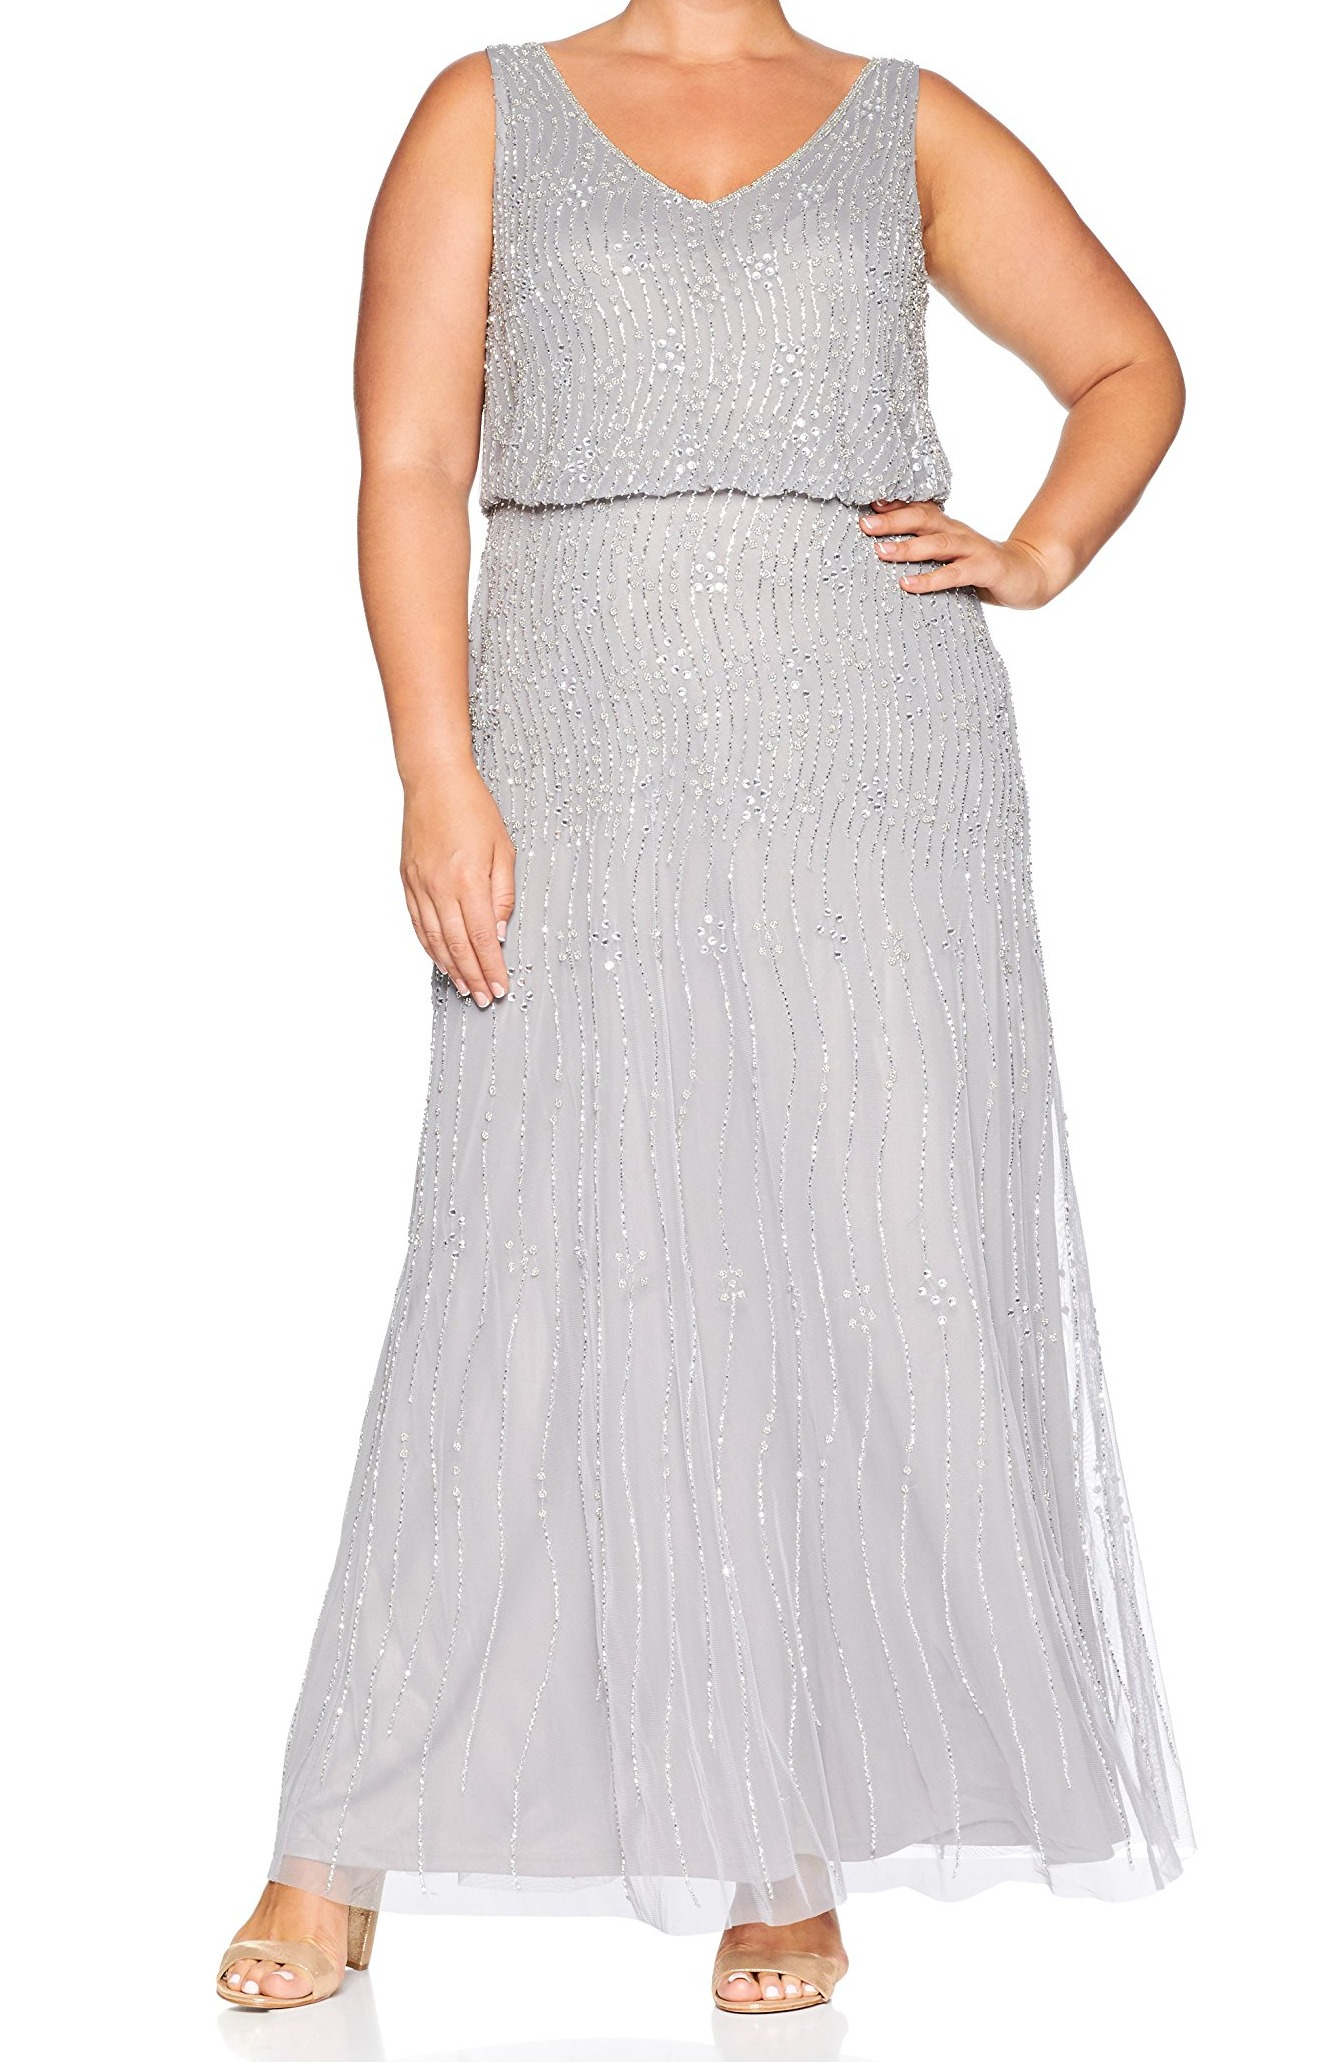 00ccbfad6b77c2 We have more Adrianna Papell in Size 16W - Click Here Click to see all  Womens Dresses in Size 16W